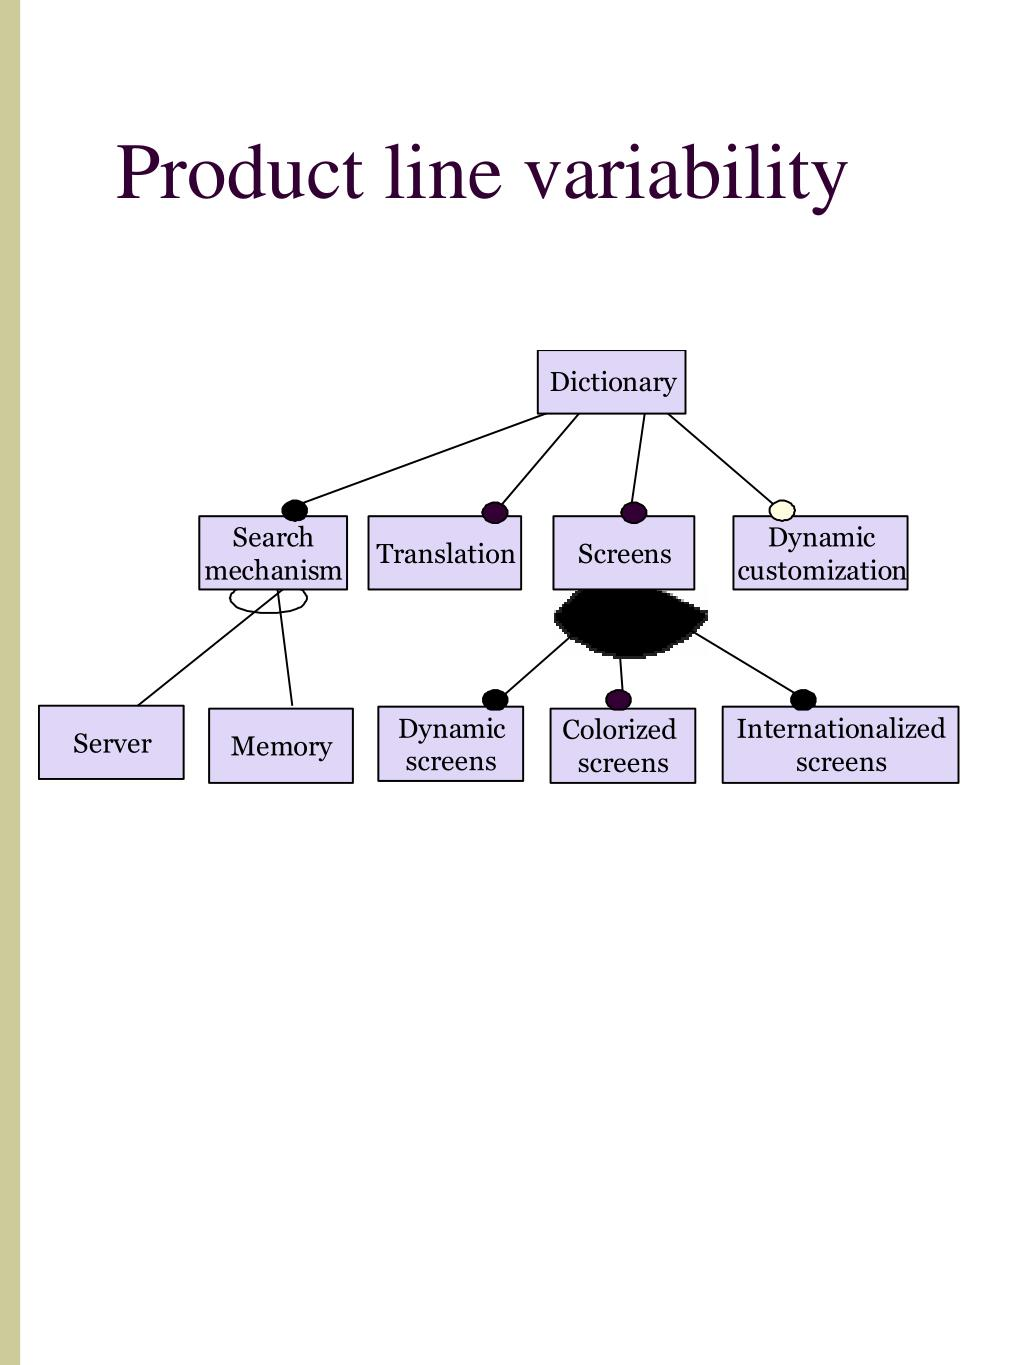 Product line variability